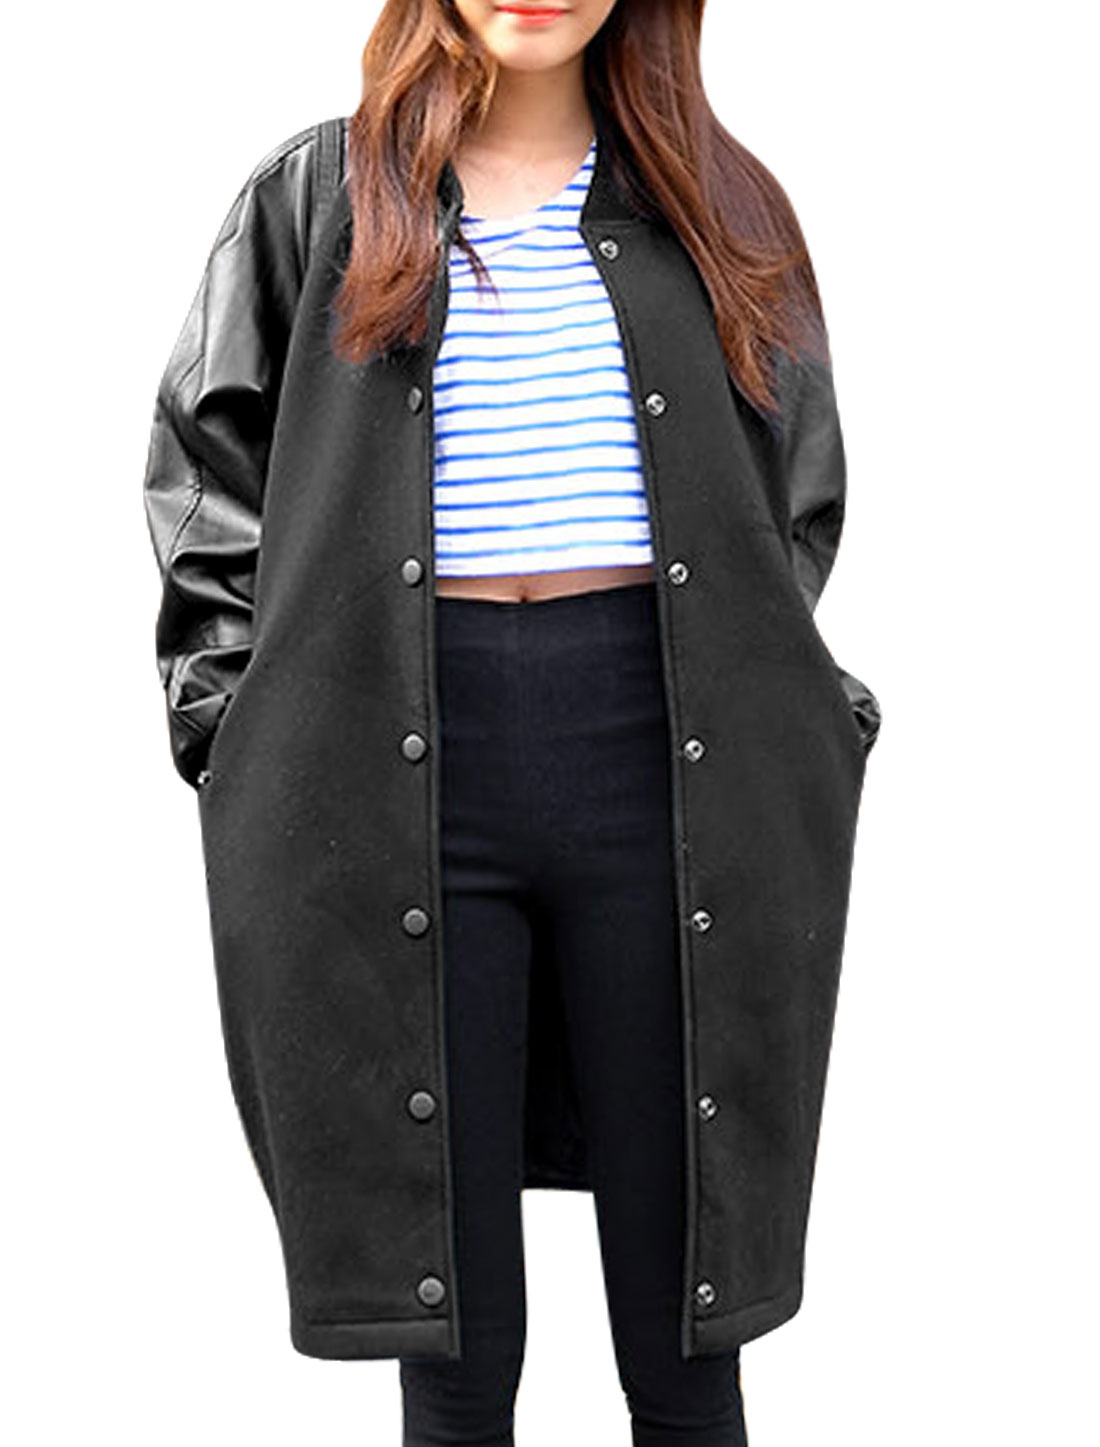 Lady Single Breasted Imitation Leather Panel Trench Jacket Black S